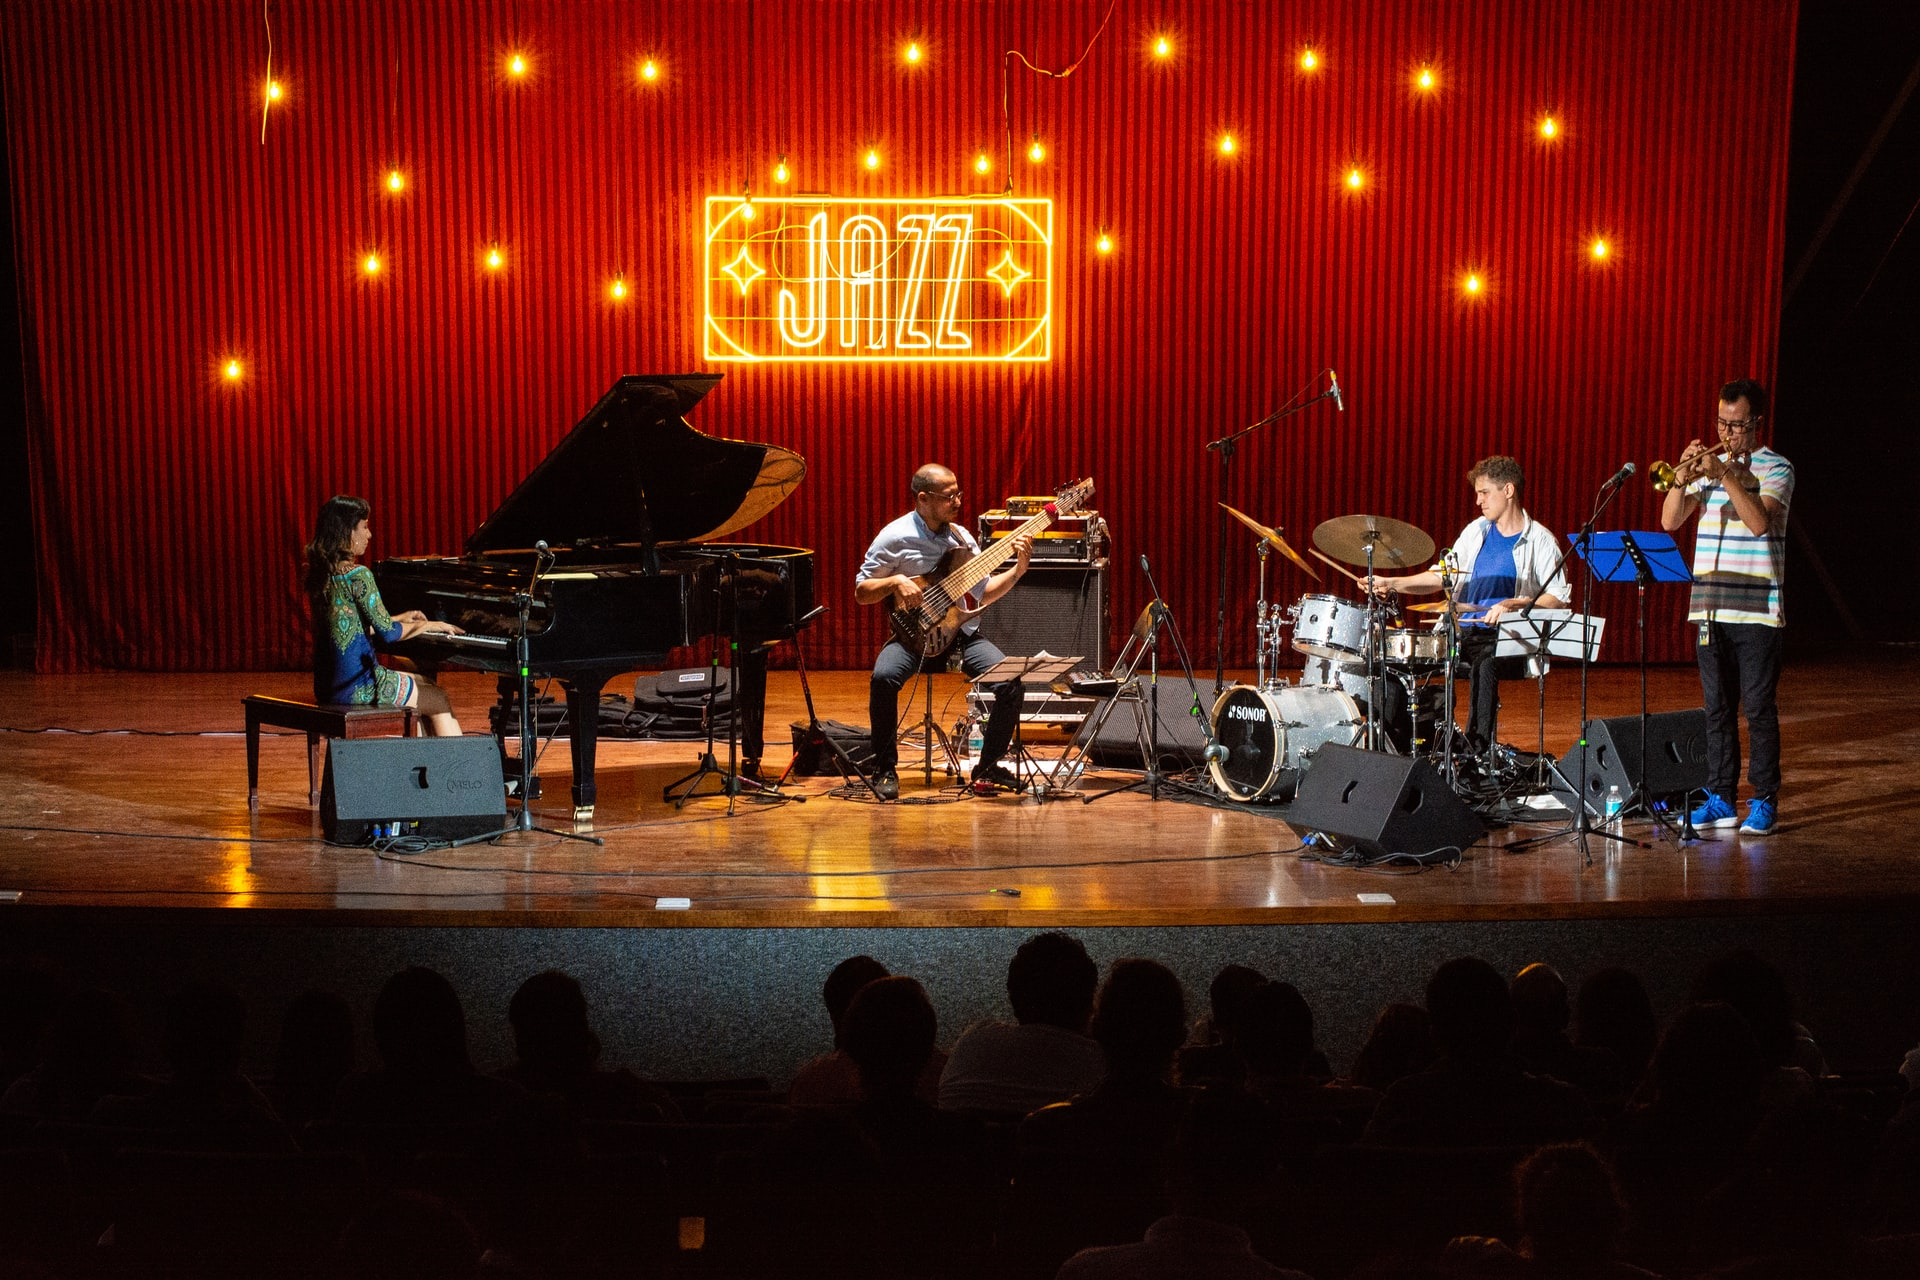 """Jazz band playing on stage with red light sign """"JAZZ"""" behind them. Left to right: woman playing grand piano, man playing bass, man playing drums, man playing trumpet."""